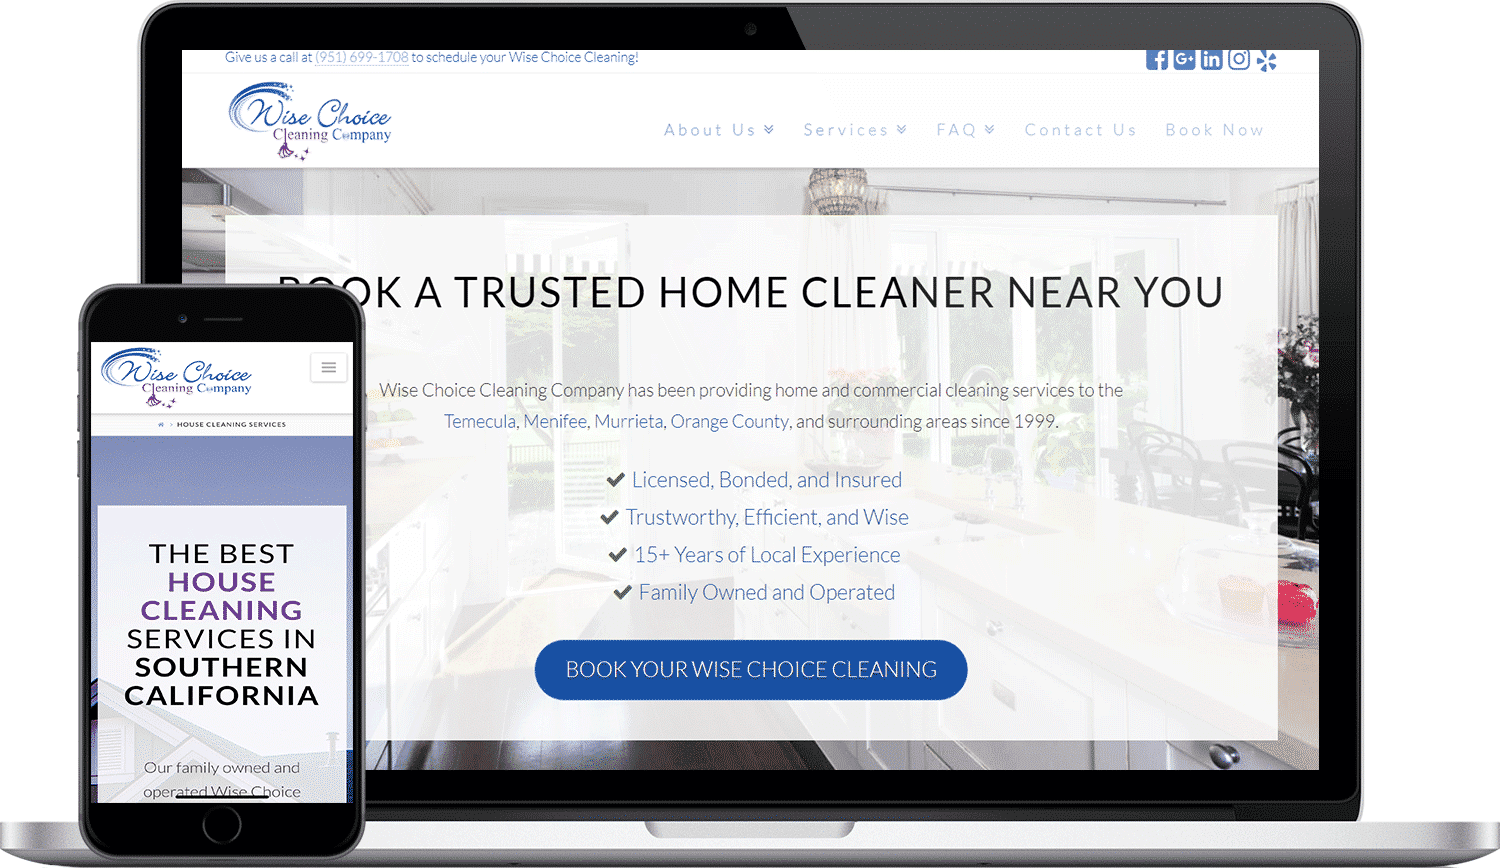 Wise Choice Cleaning Company Digital Marketing